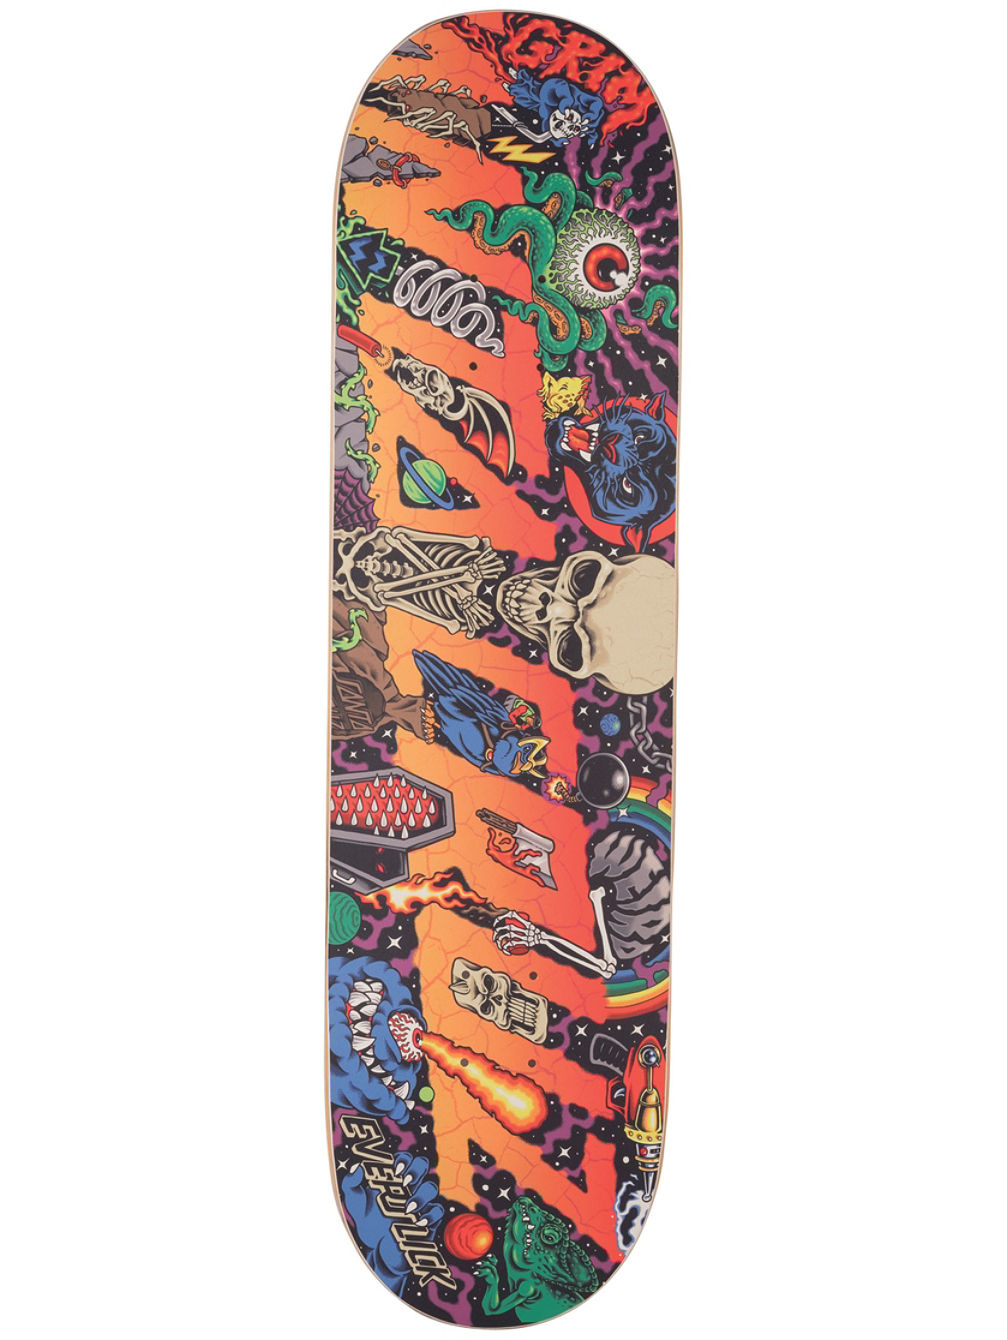 Everslick Pitchgrim 8.375 Skate Deck